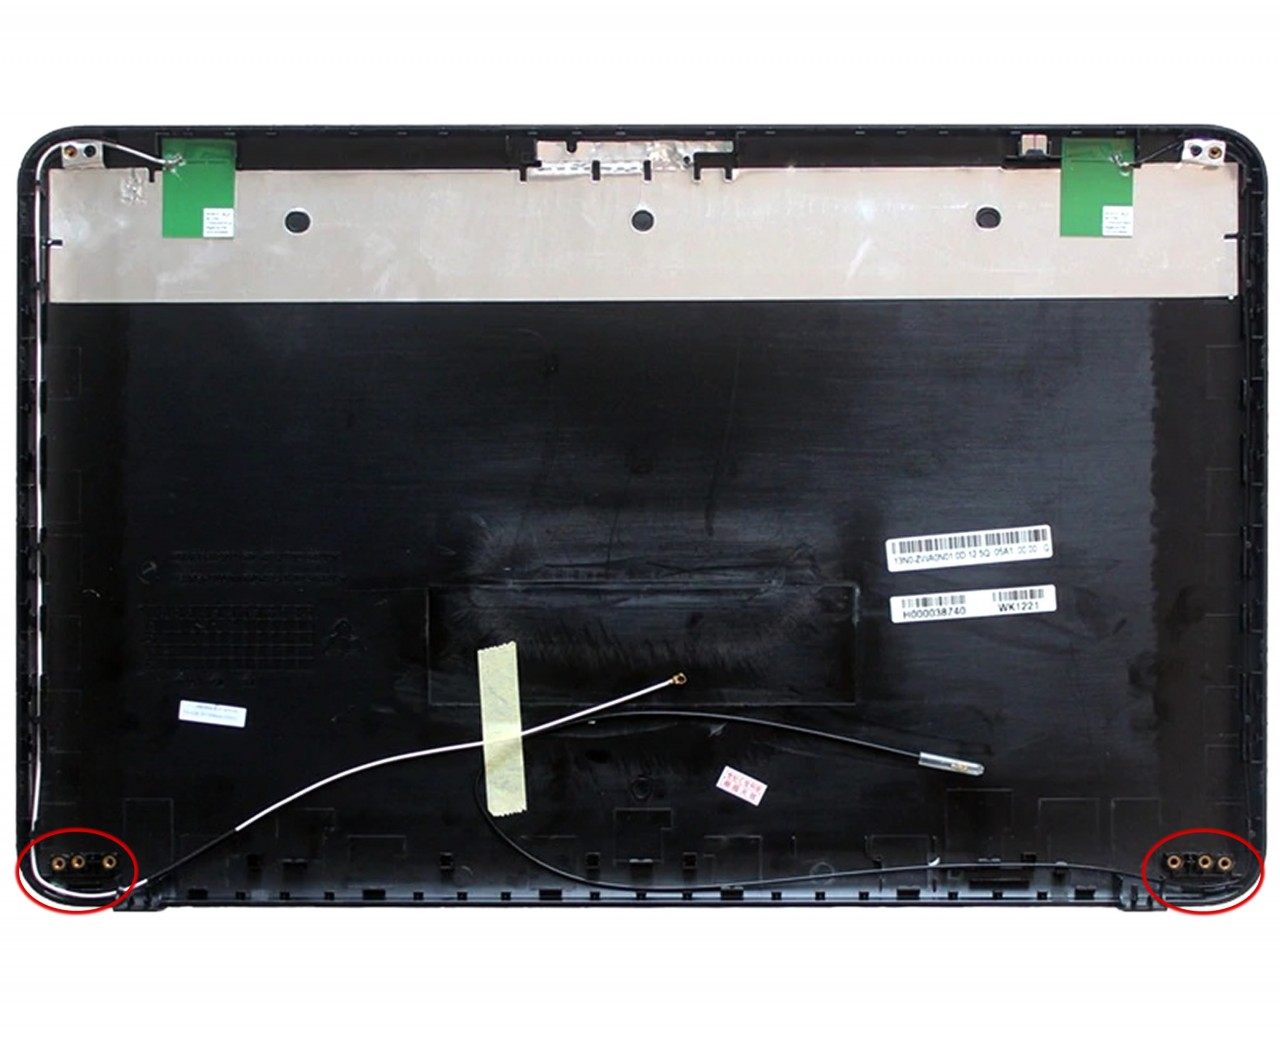 Capac Display BackCover Toshiba Satellite L855 Carcasa Display Neagra cu 3 Suruburi Balamale imagine powerlaptop.ro 2021